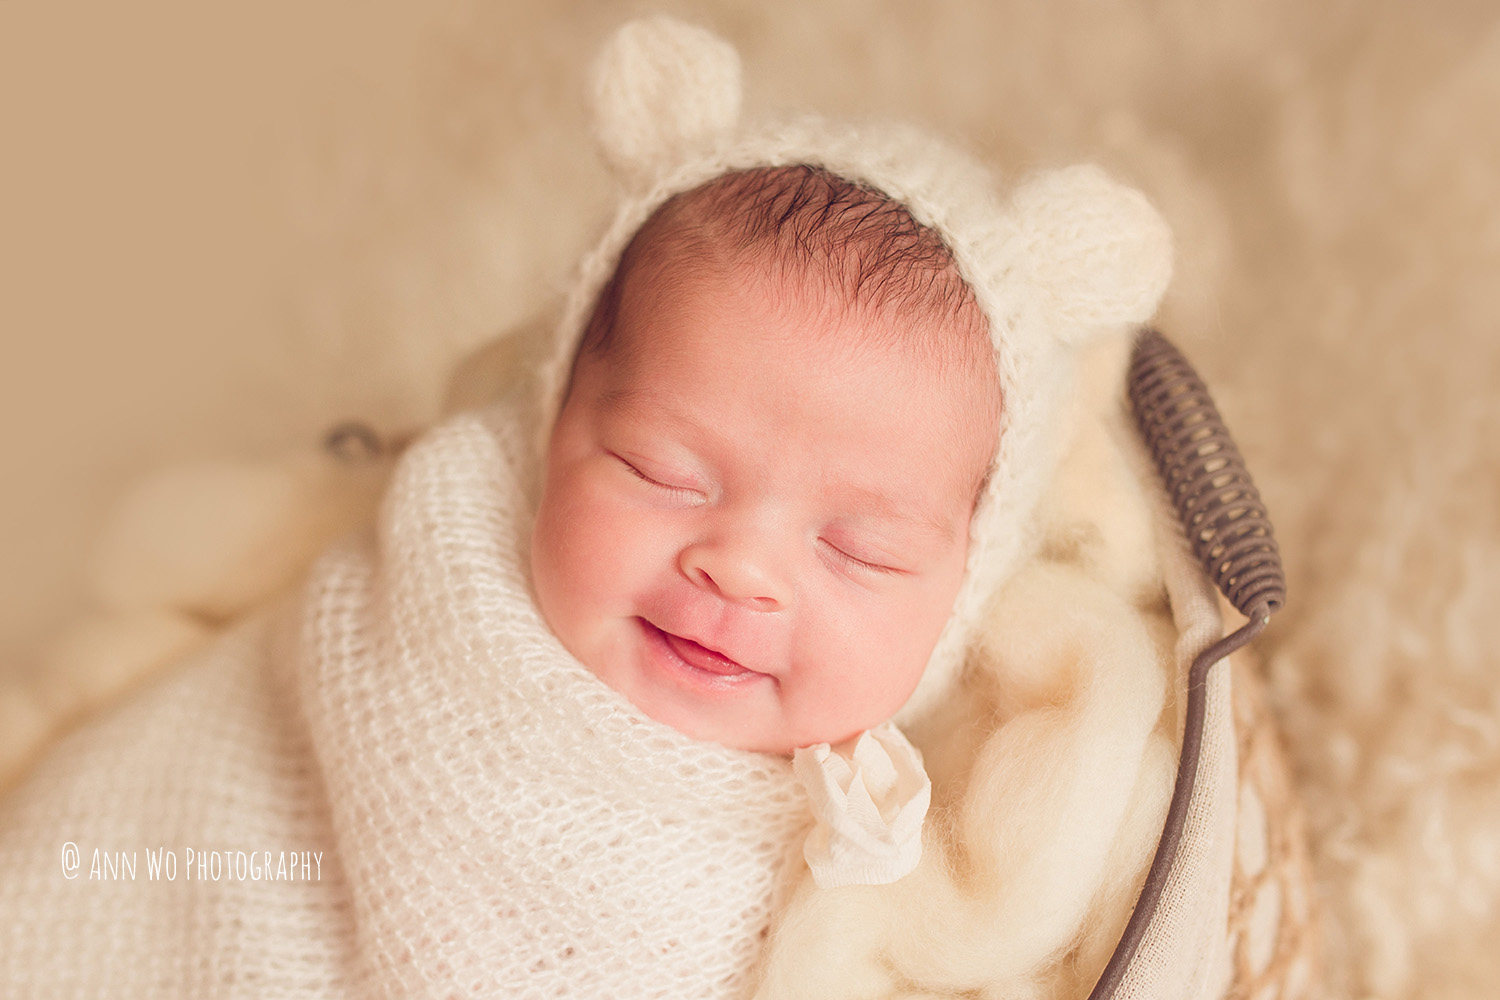 Newborn photography in London by Ann Wo cream bear hat smile